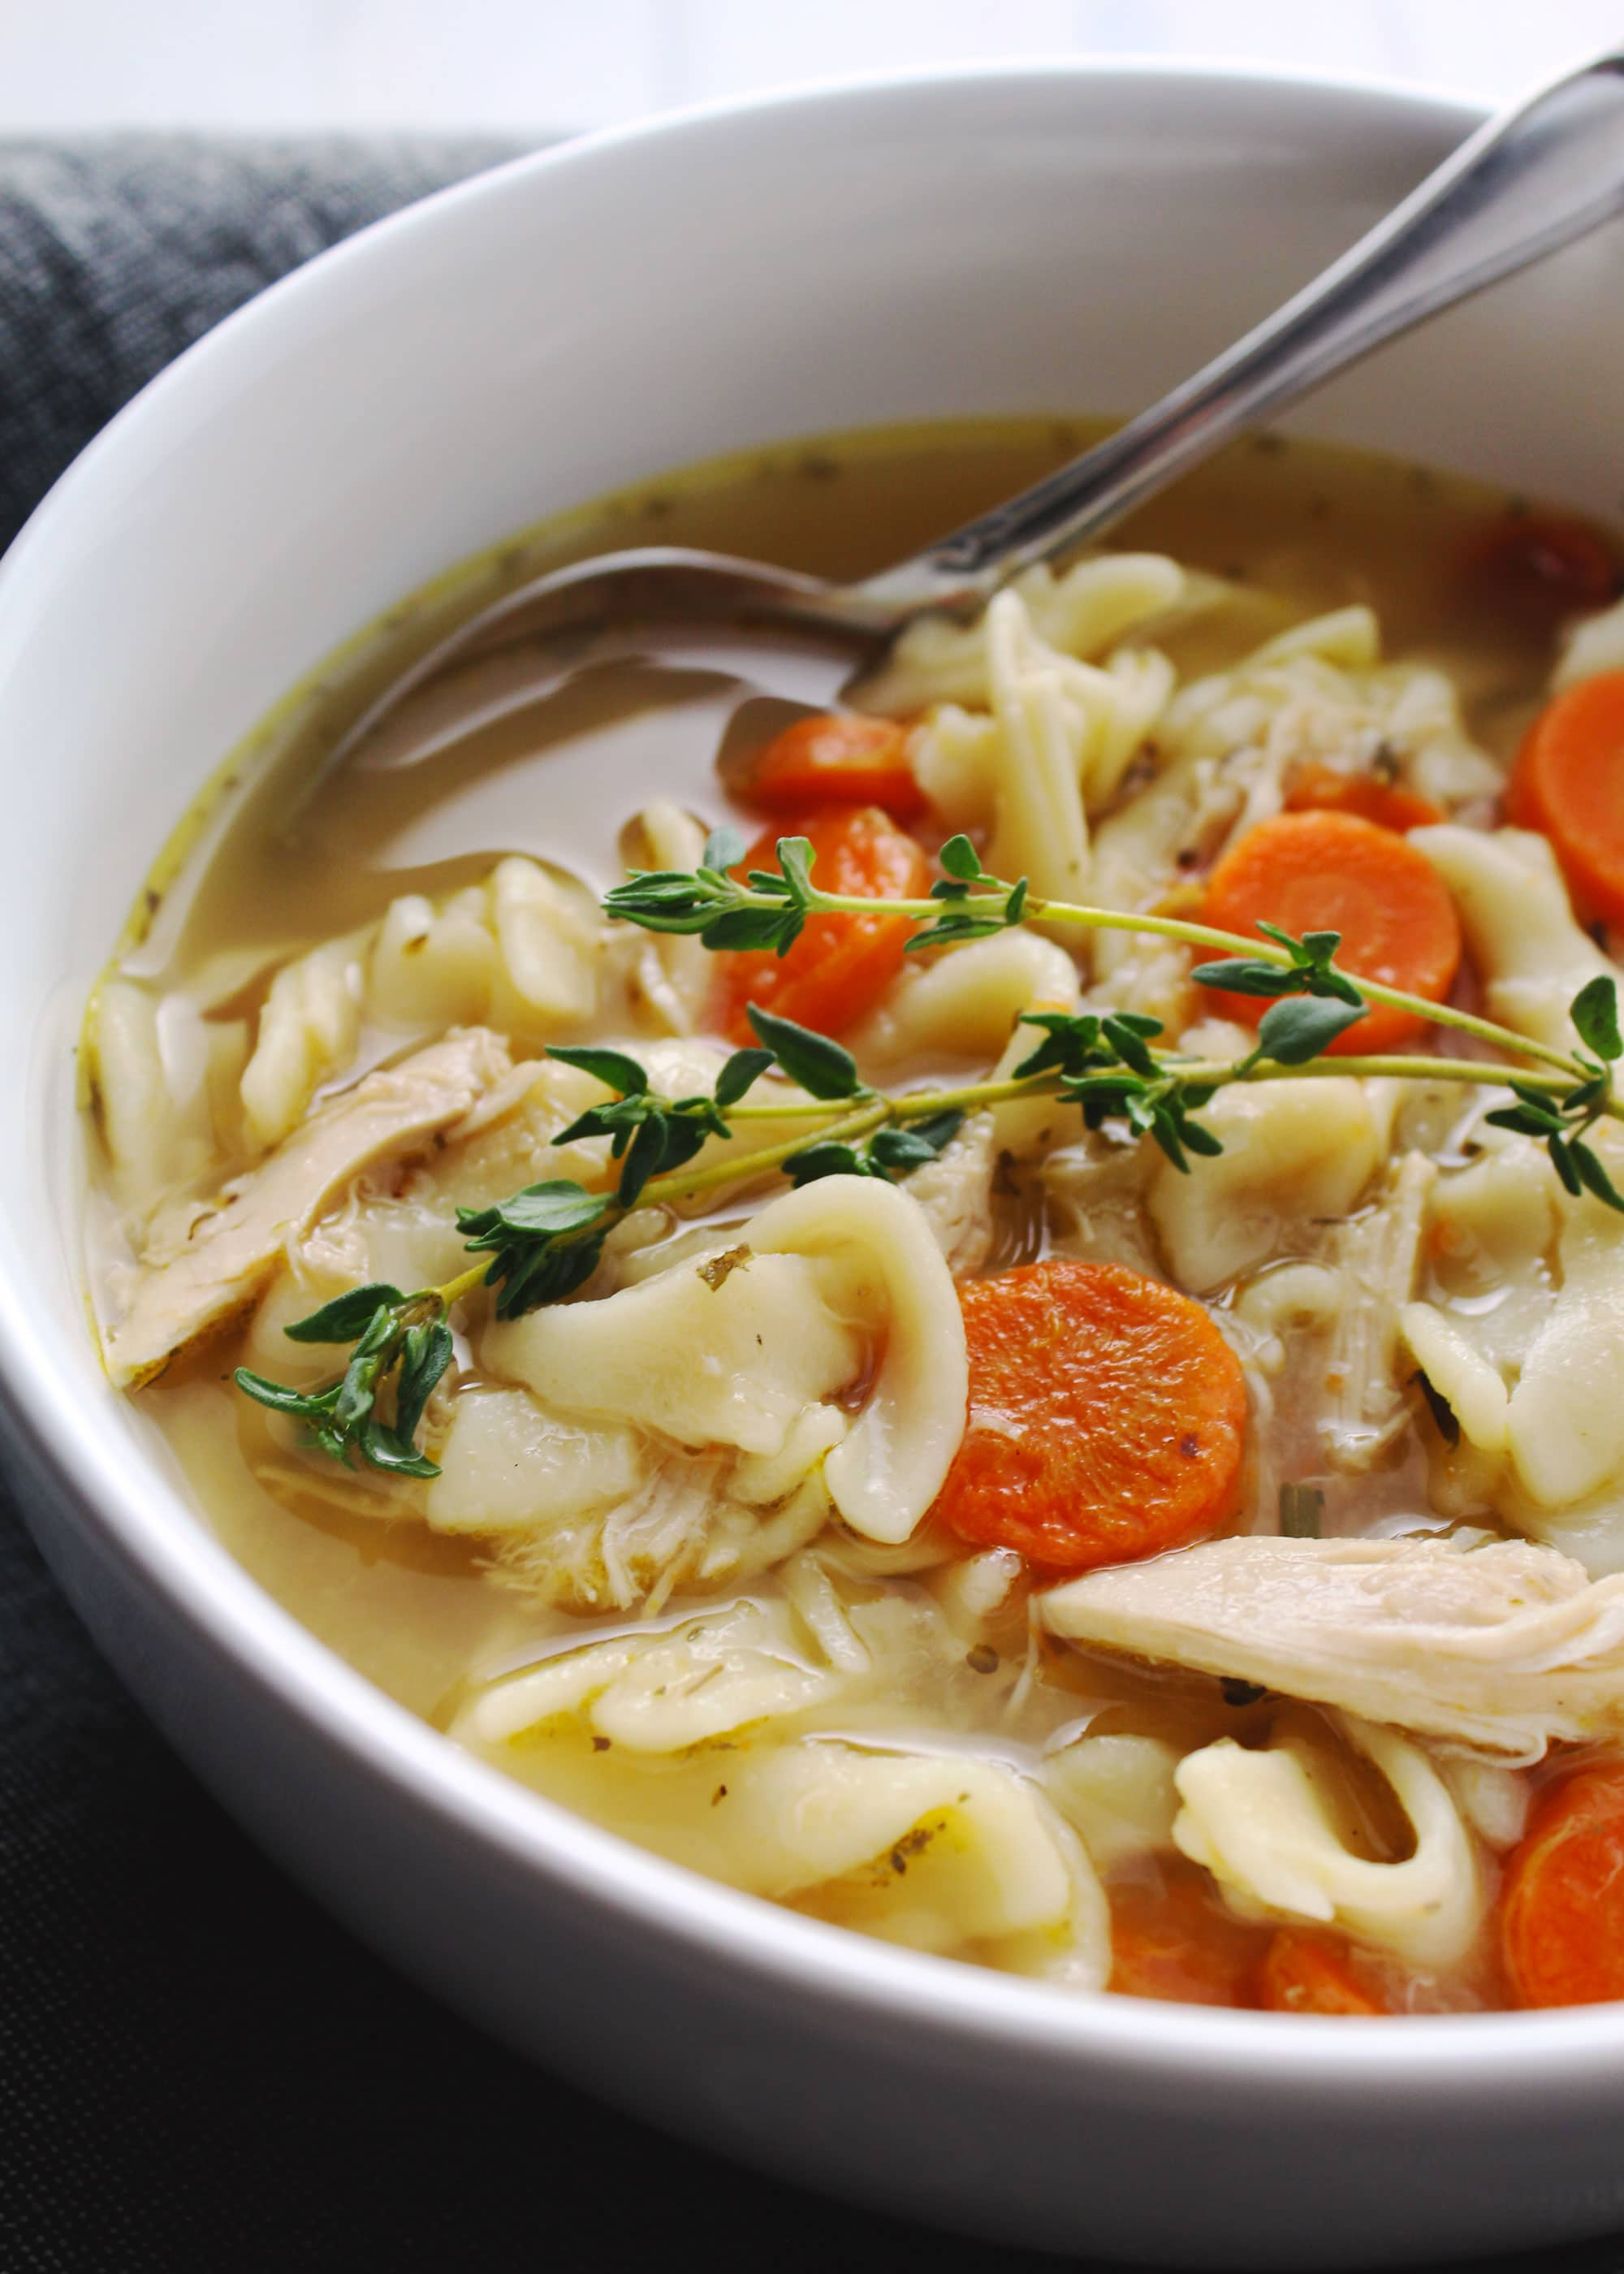 Homemade chicken noodle soup topped with thyme in a white bowl.